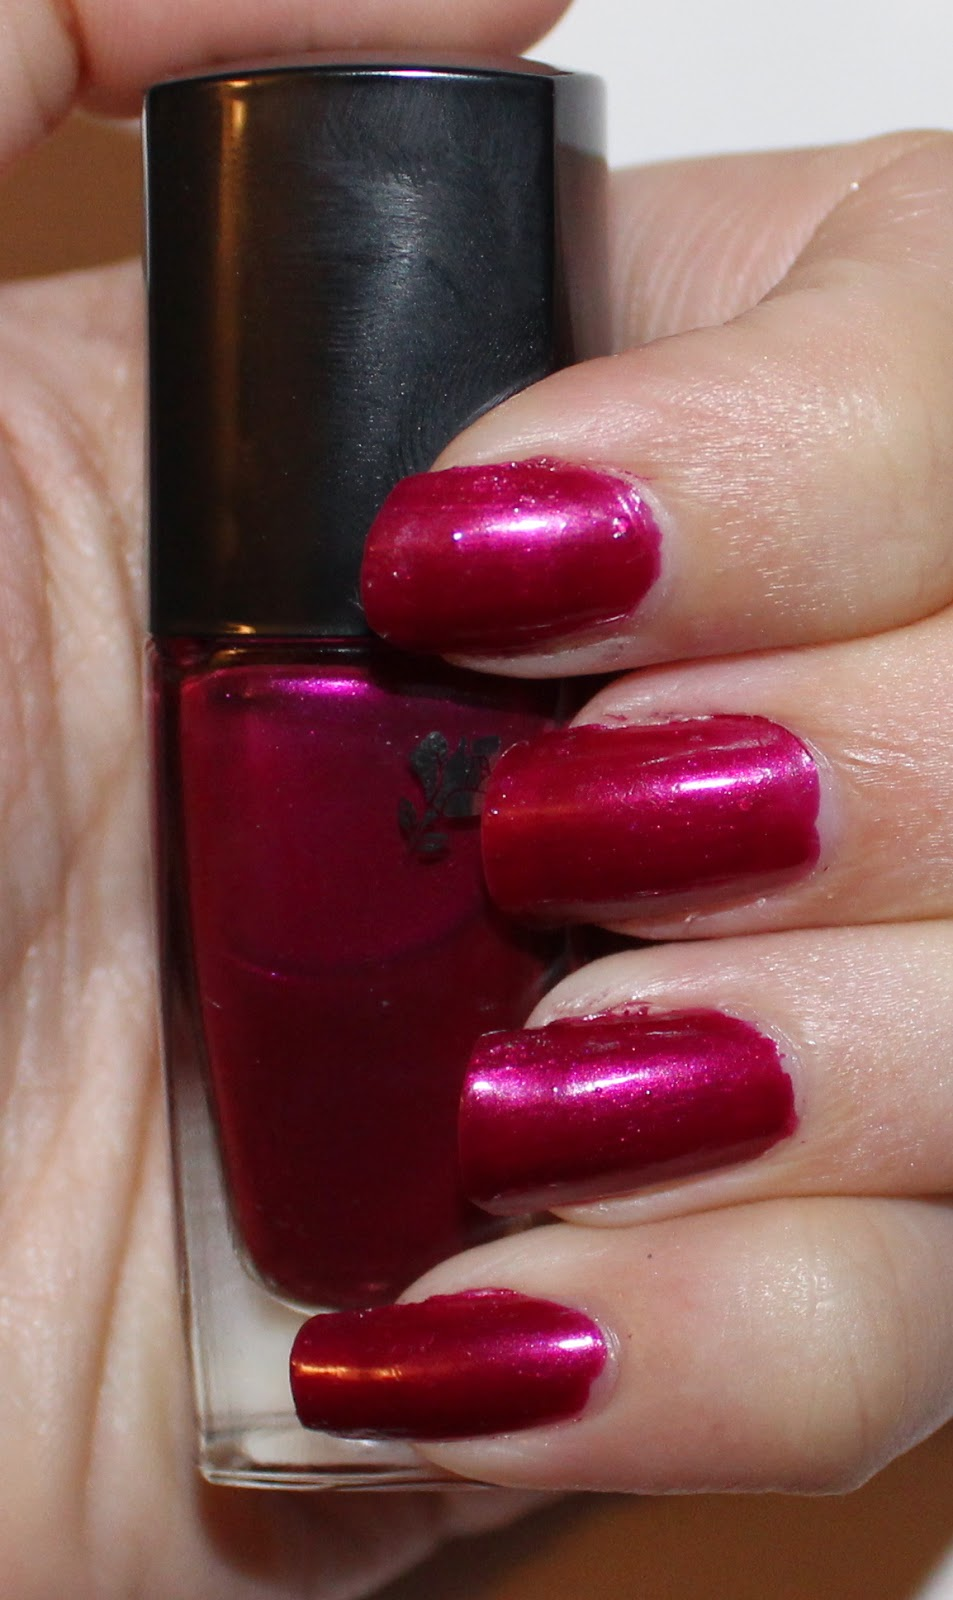 Lancôme French Idole Vernis in Love Topaze Rose